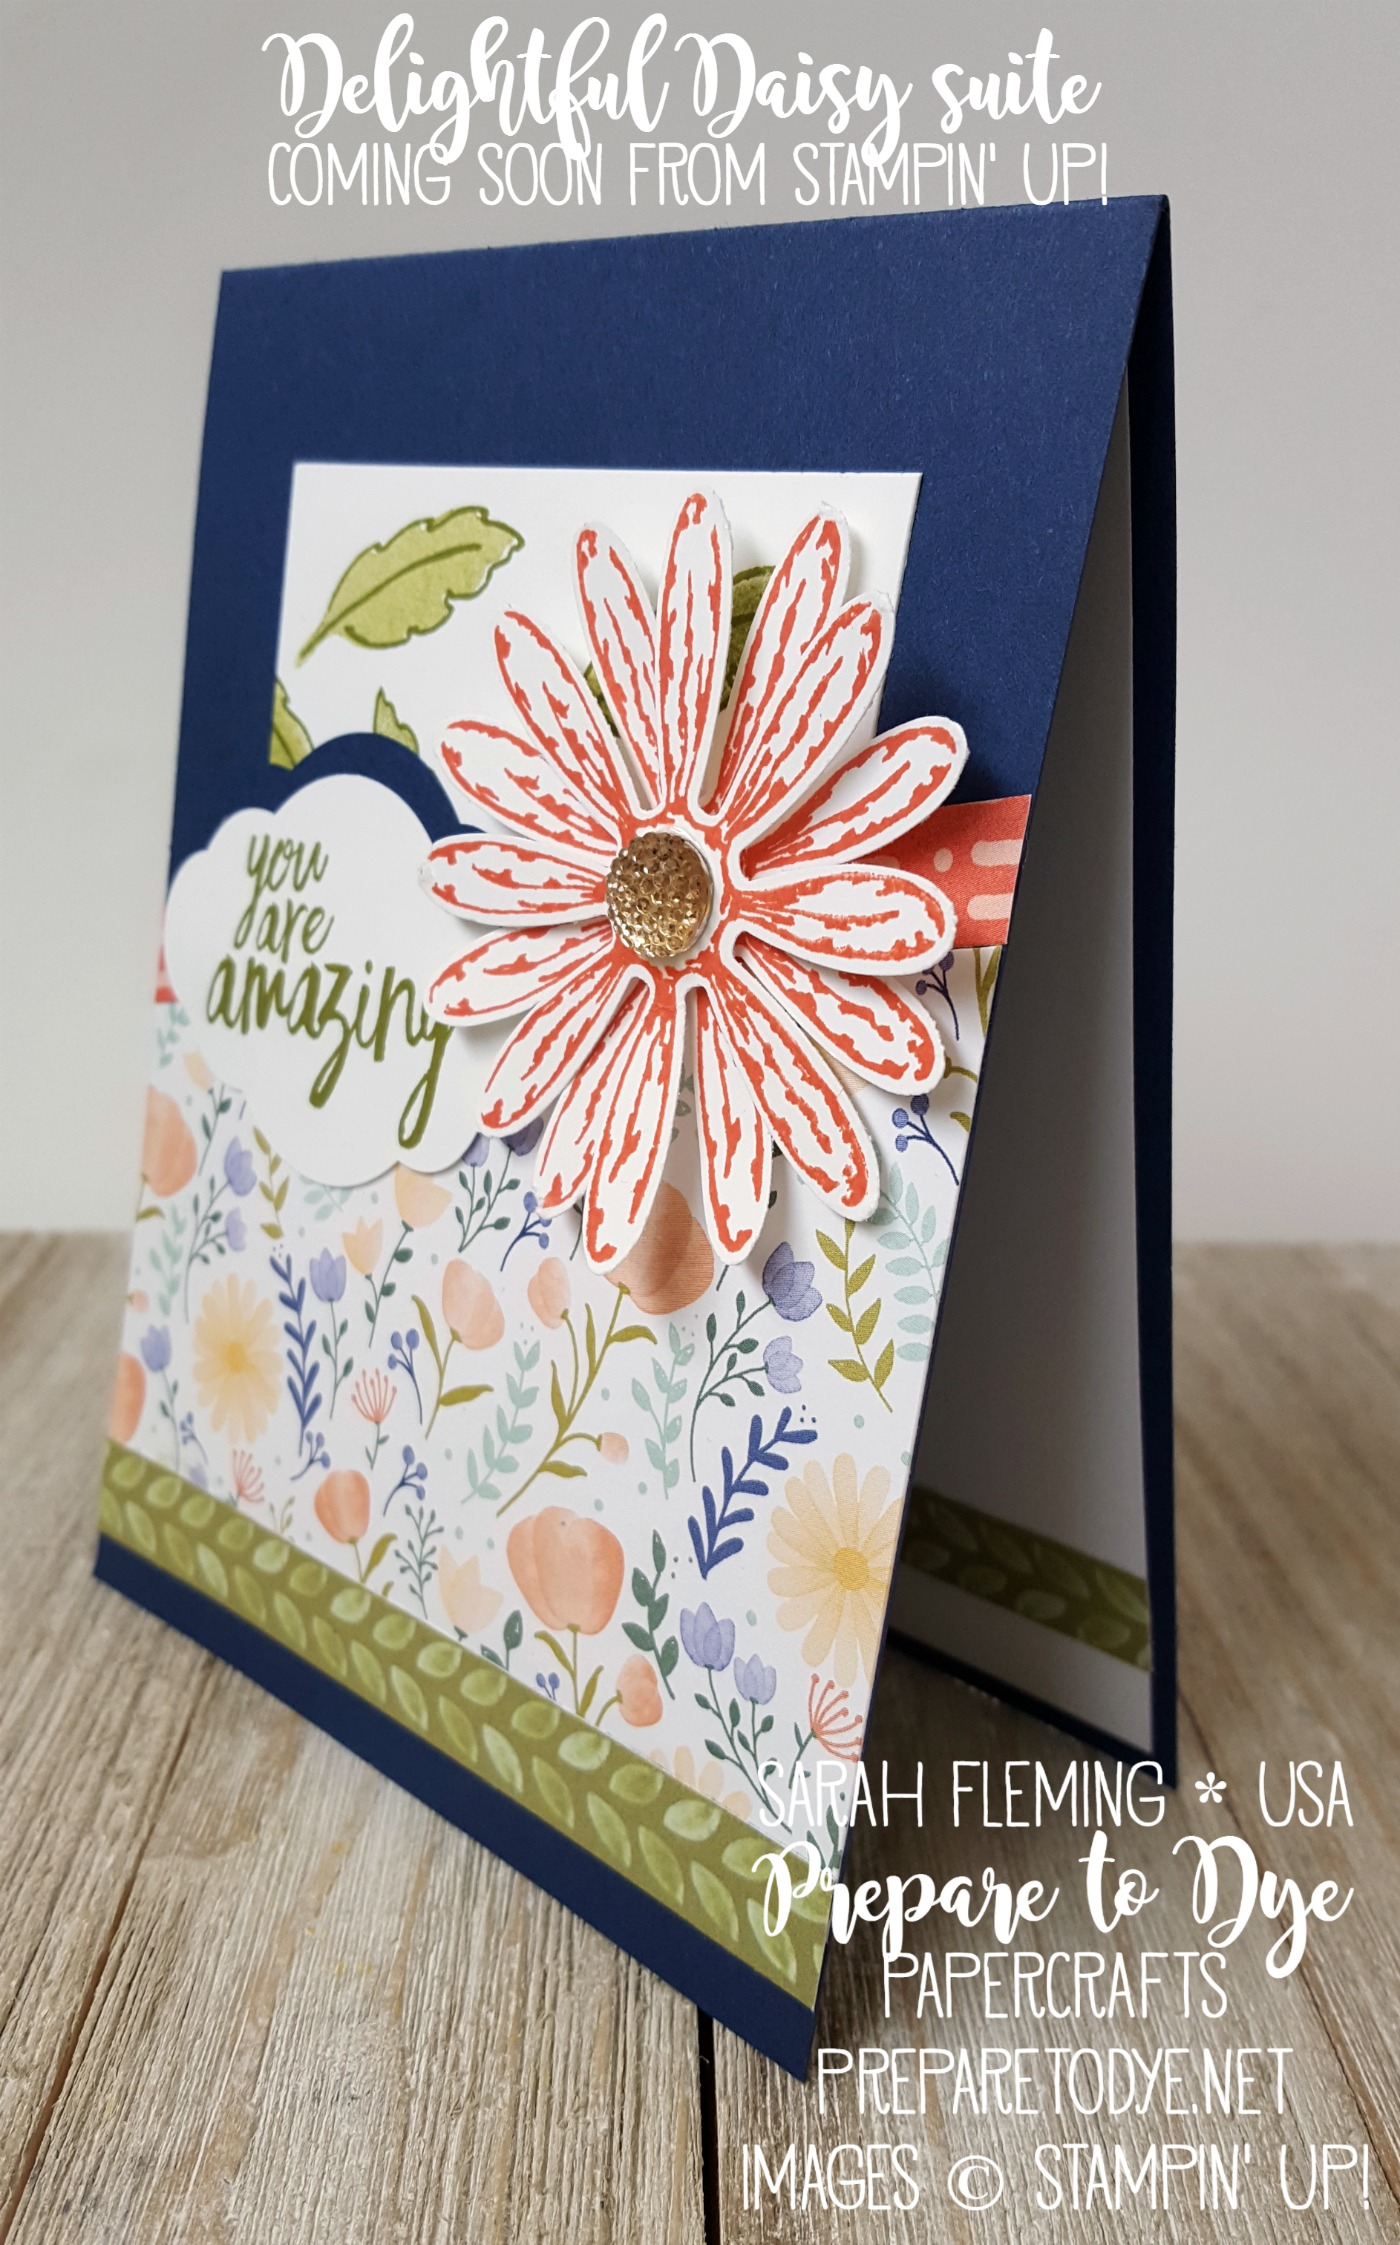 Stampin' Up! Delightful Daisy suite is gorgeous! - coming June 1, join my team to order right away! - Global Design Project #086 - Sarah Fleming - Prepare to Dye Papercrafts